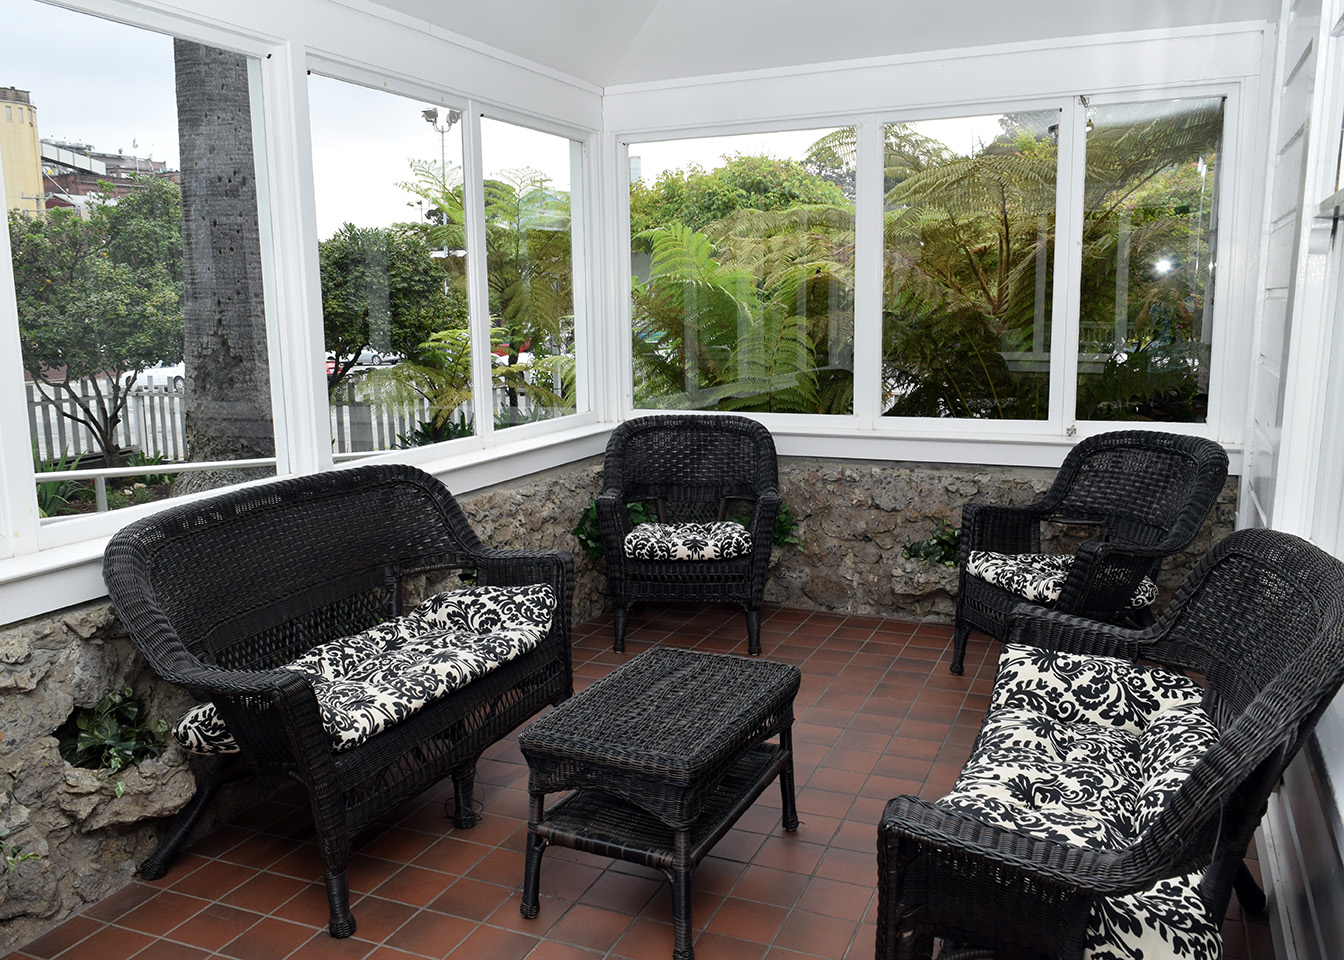 Interior: Porch veranda sitting area